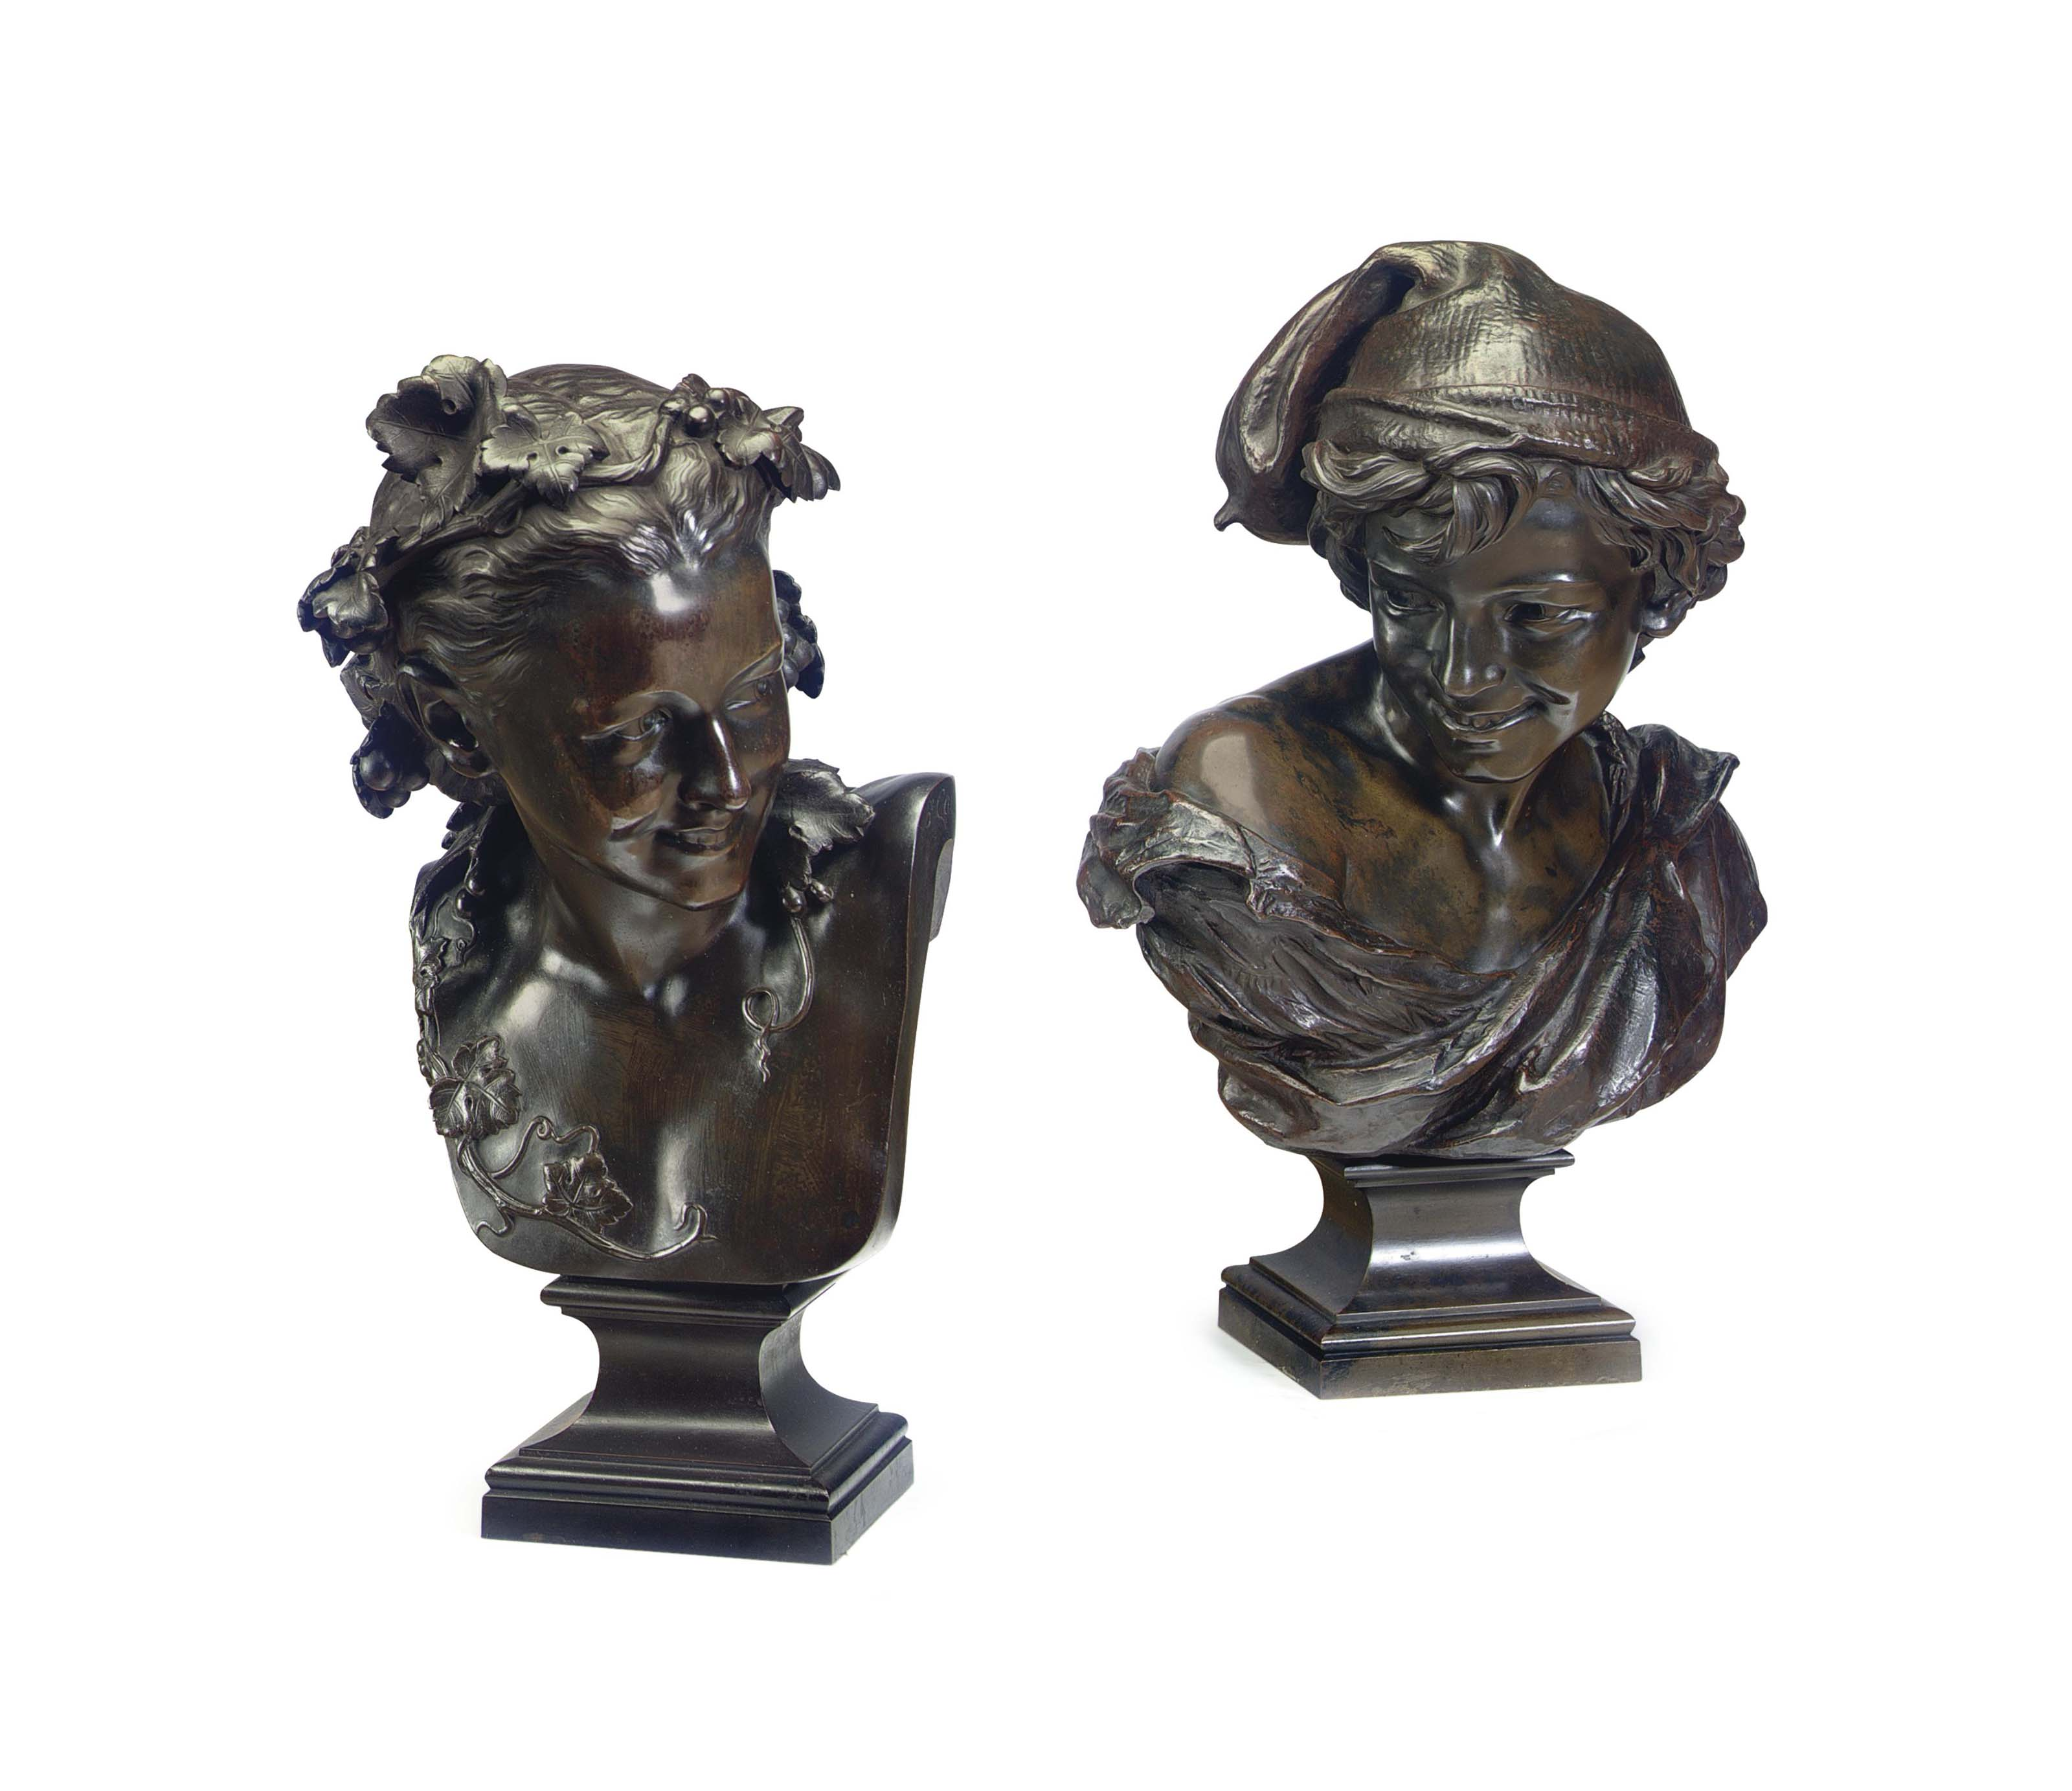 A MATCHED PAIR OF FRENCH PATINATED BRONZE BUSTS ENTITLED 'LE RIEUR NAPOLITAIN' AND 'L'ESPIEGLE'